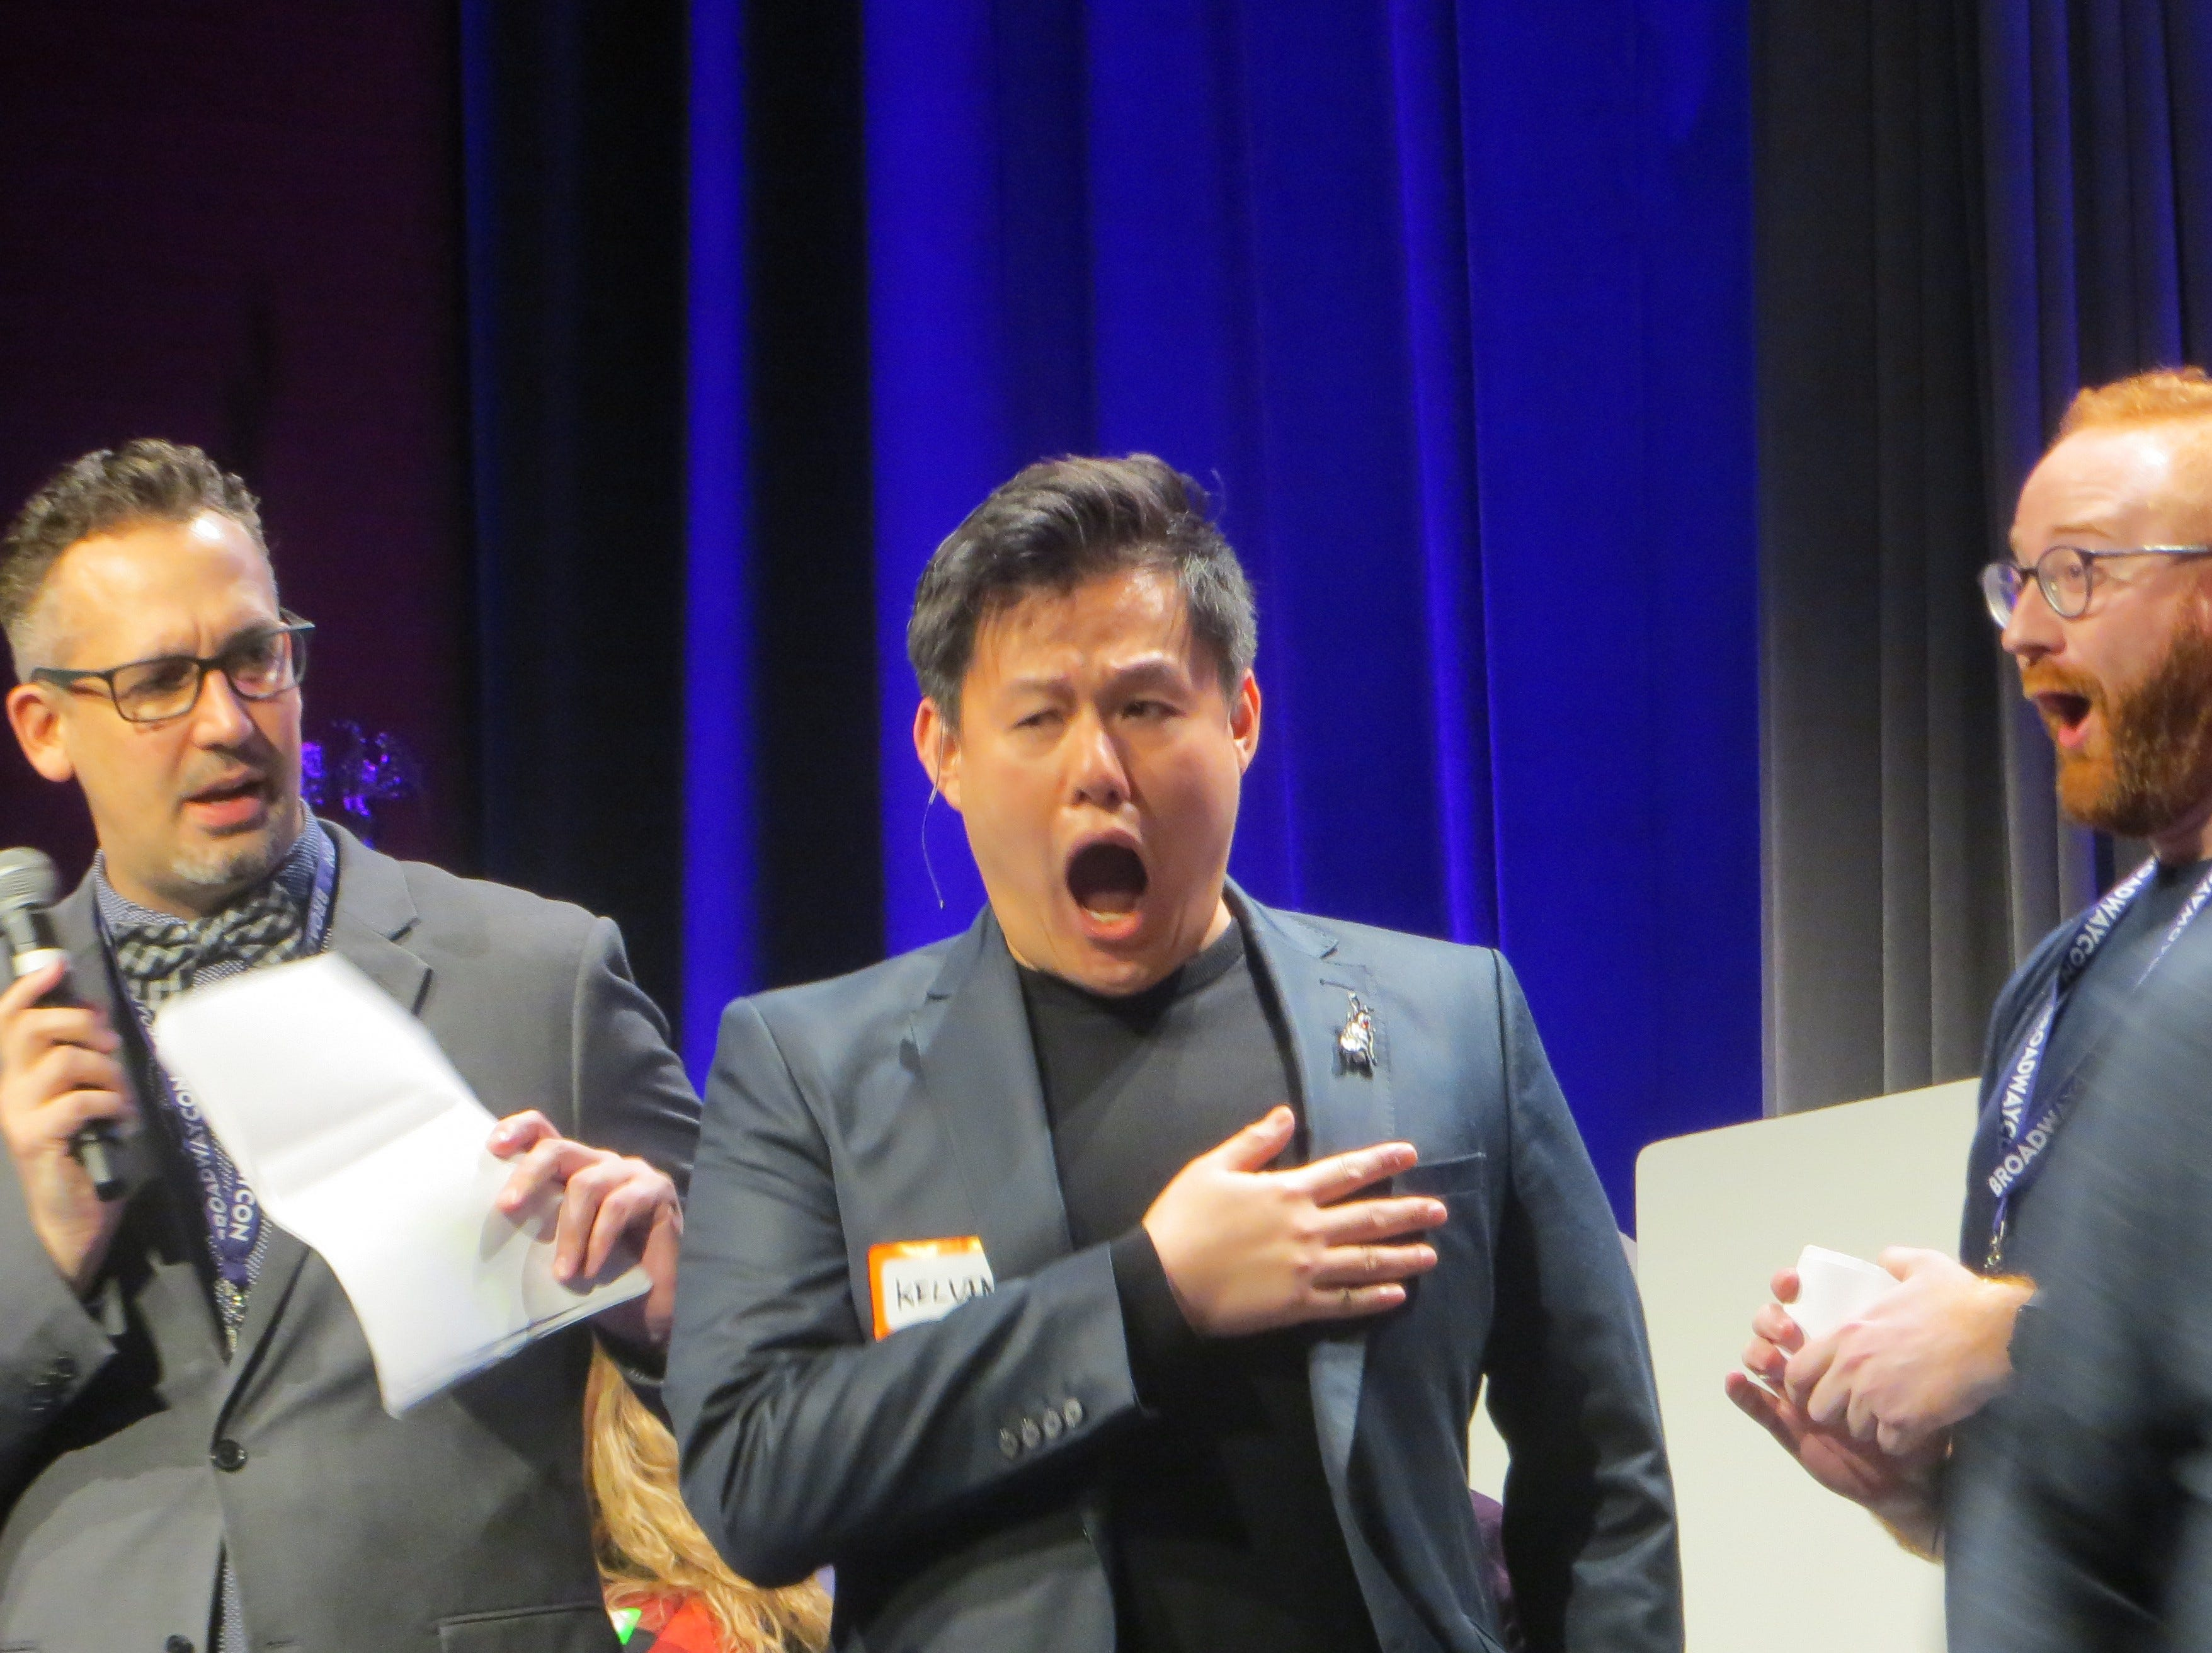 Ben Cameron, Kelvin Moon Loh and David Alpert react during Game Night  at BroadwayCon 2019, held Jan. 11 to 13, 2019, at the New York Hilton Midtown in Manhattan.